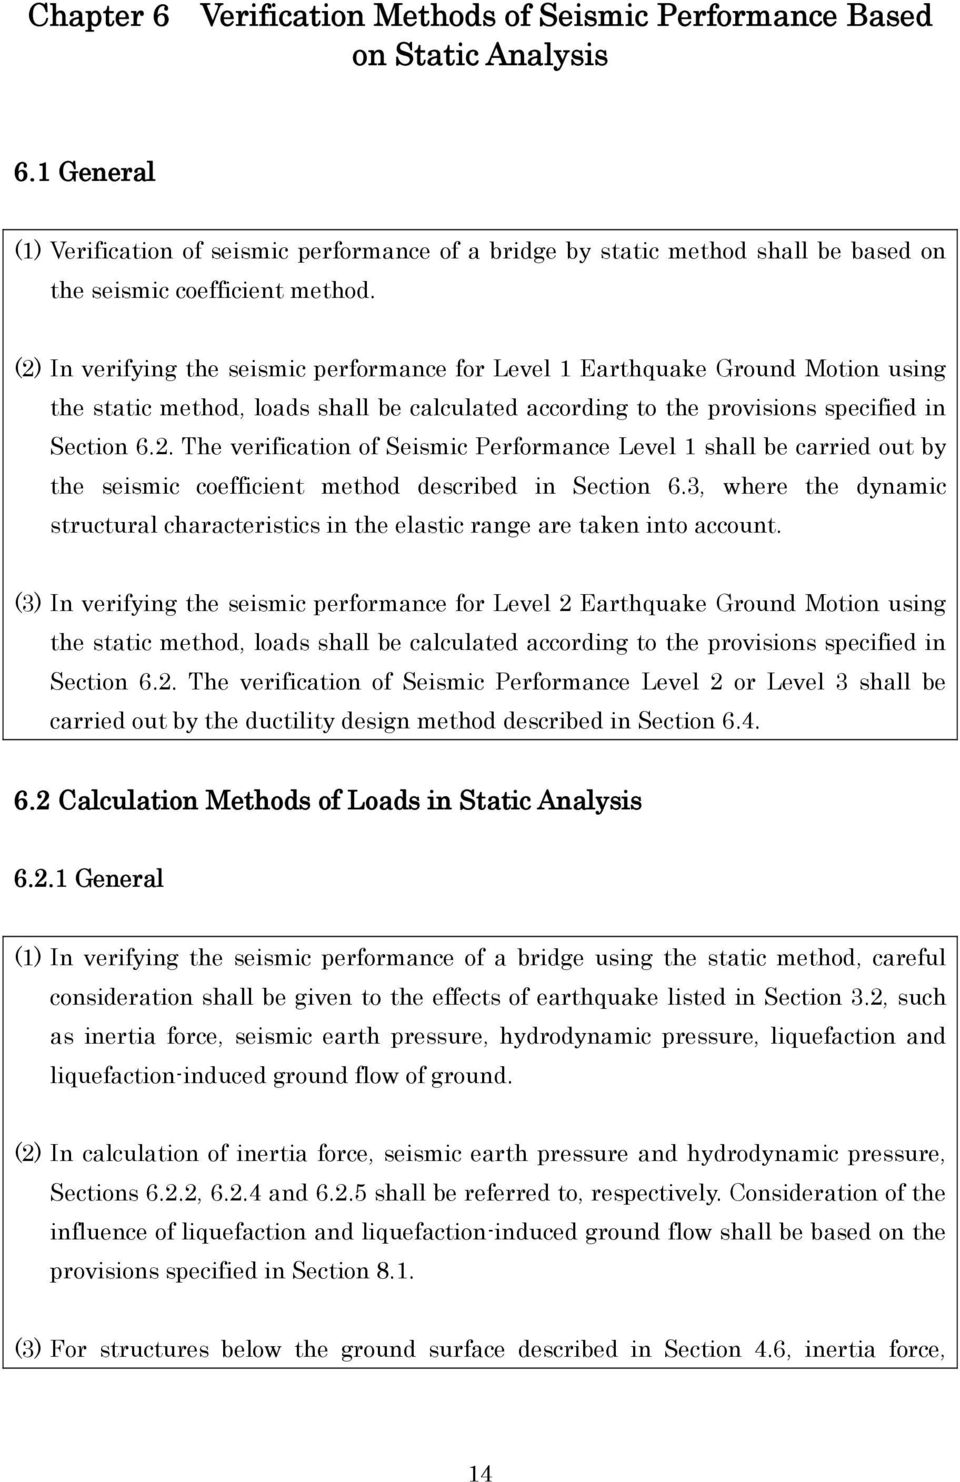 (2) In verifying the seismic performance for Level 1 Earthquake Ground Motion using the static method, loads shall be calculated according to the provisions specified in Section 6.2. The verification of Seismic Performance Level 1 shall be carried out by the seismic coefficient method described in Section 6.